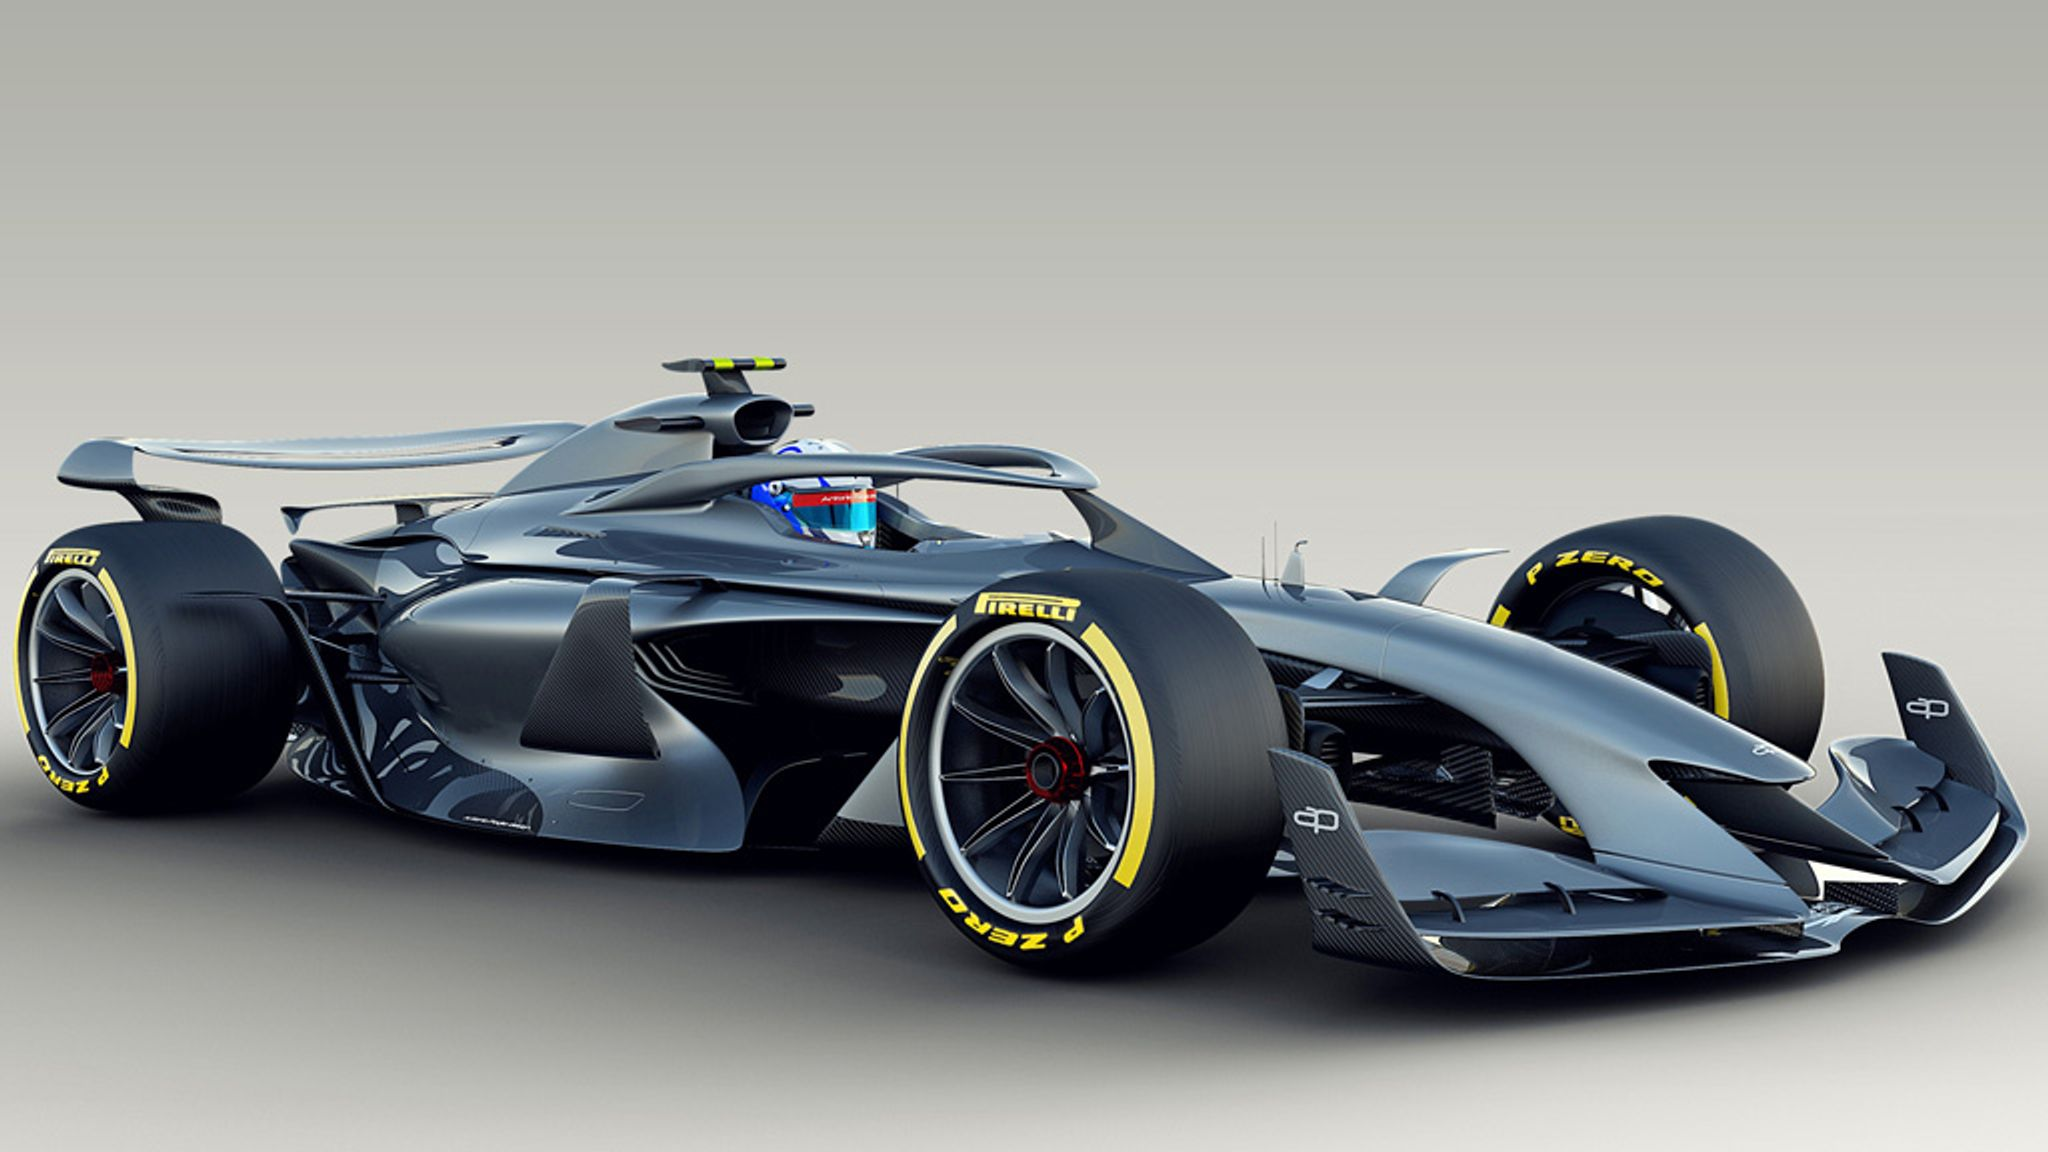 2020 Formula One Schedule F1 reveals 2021 concept cars with aim to improve racing | F1 News